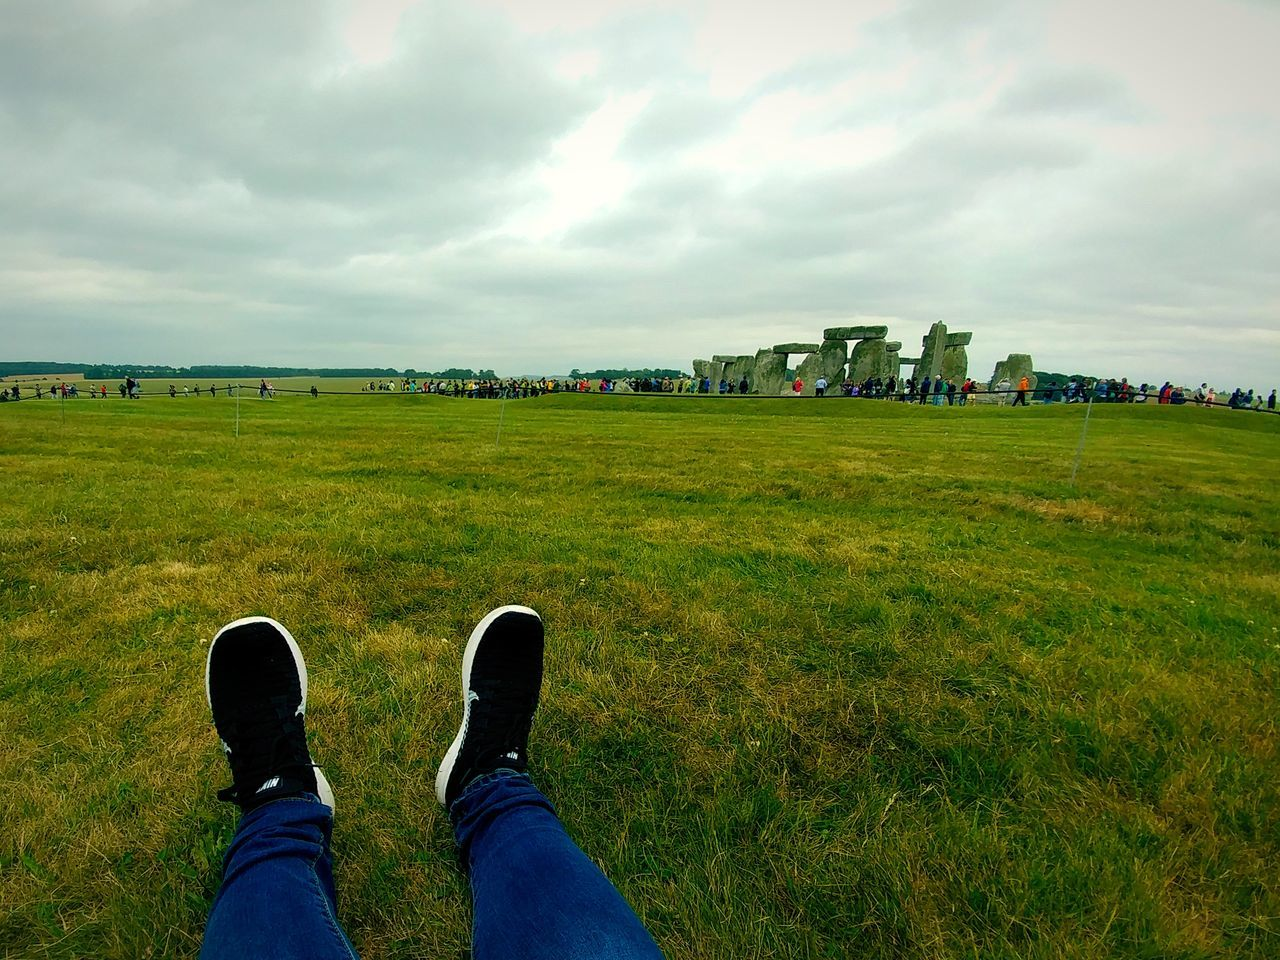 grass, cloud - sky, sky, real people, field, green color, day, nature, shoe, lifestyles, men, leisure activity, human leg, low section, outdoors, beauty in nature, standing, scenics, landscape, one person, people